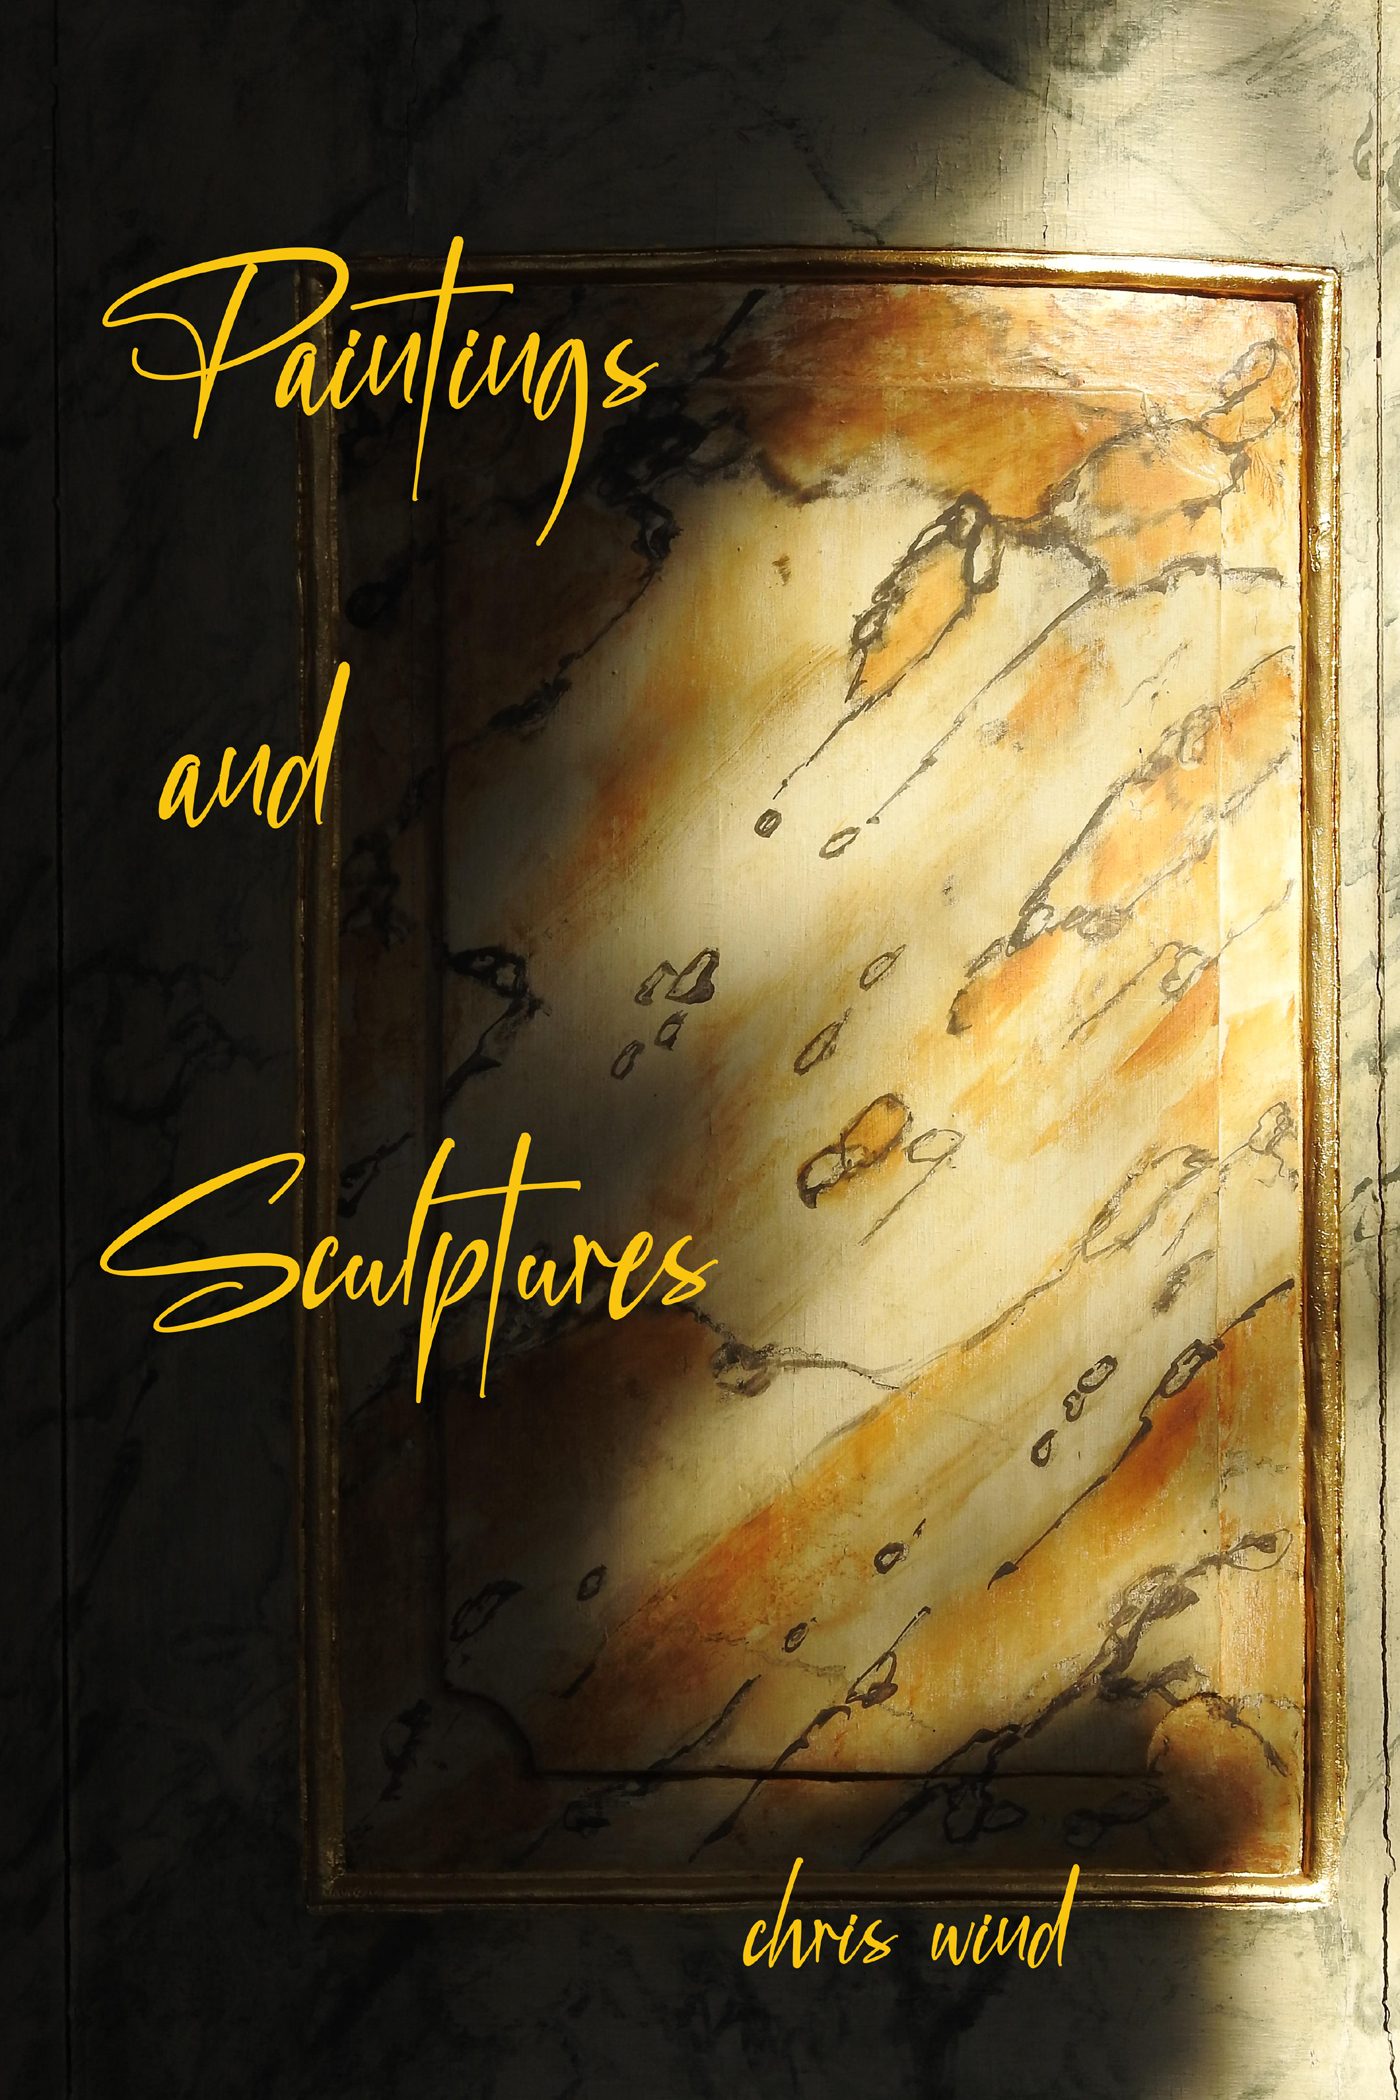 poems describing paintings and sculptures